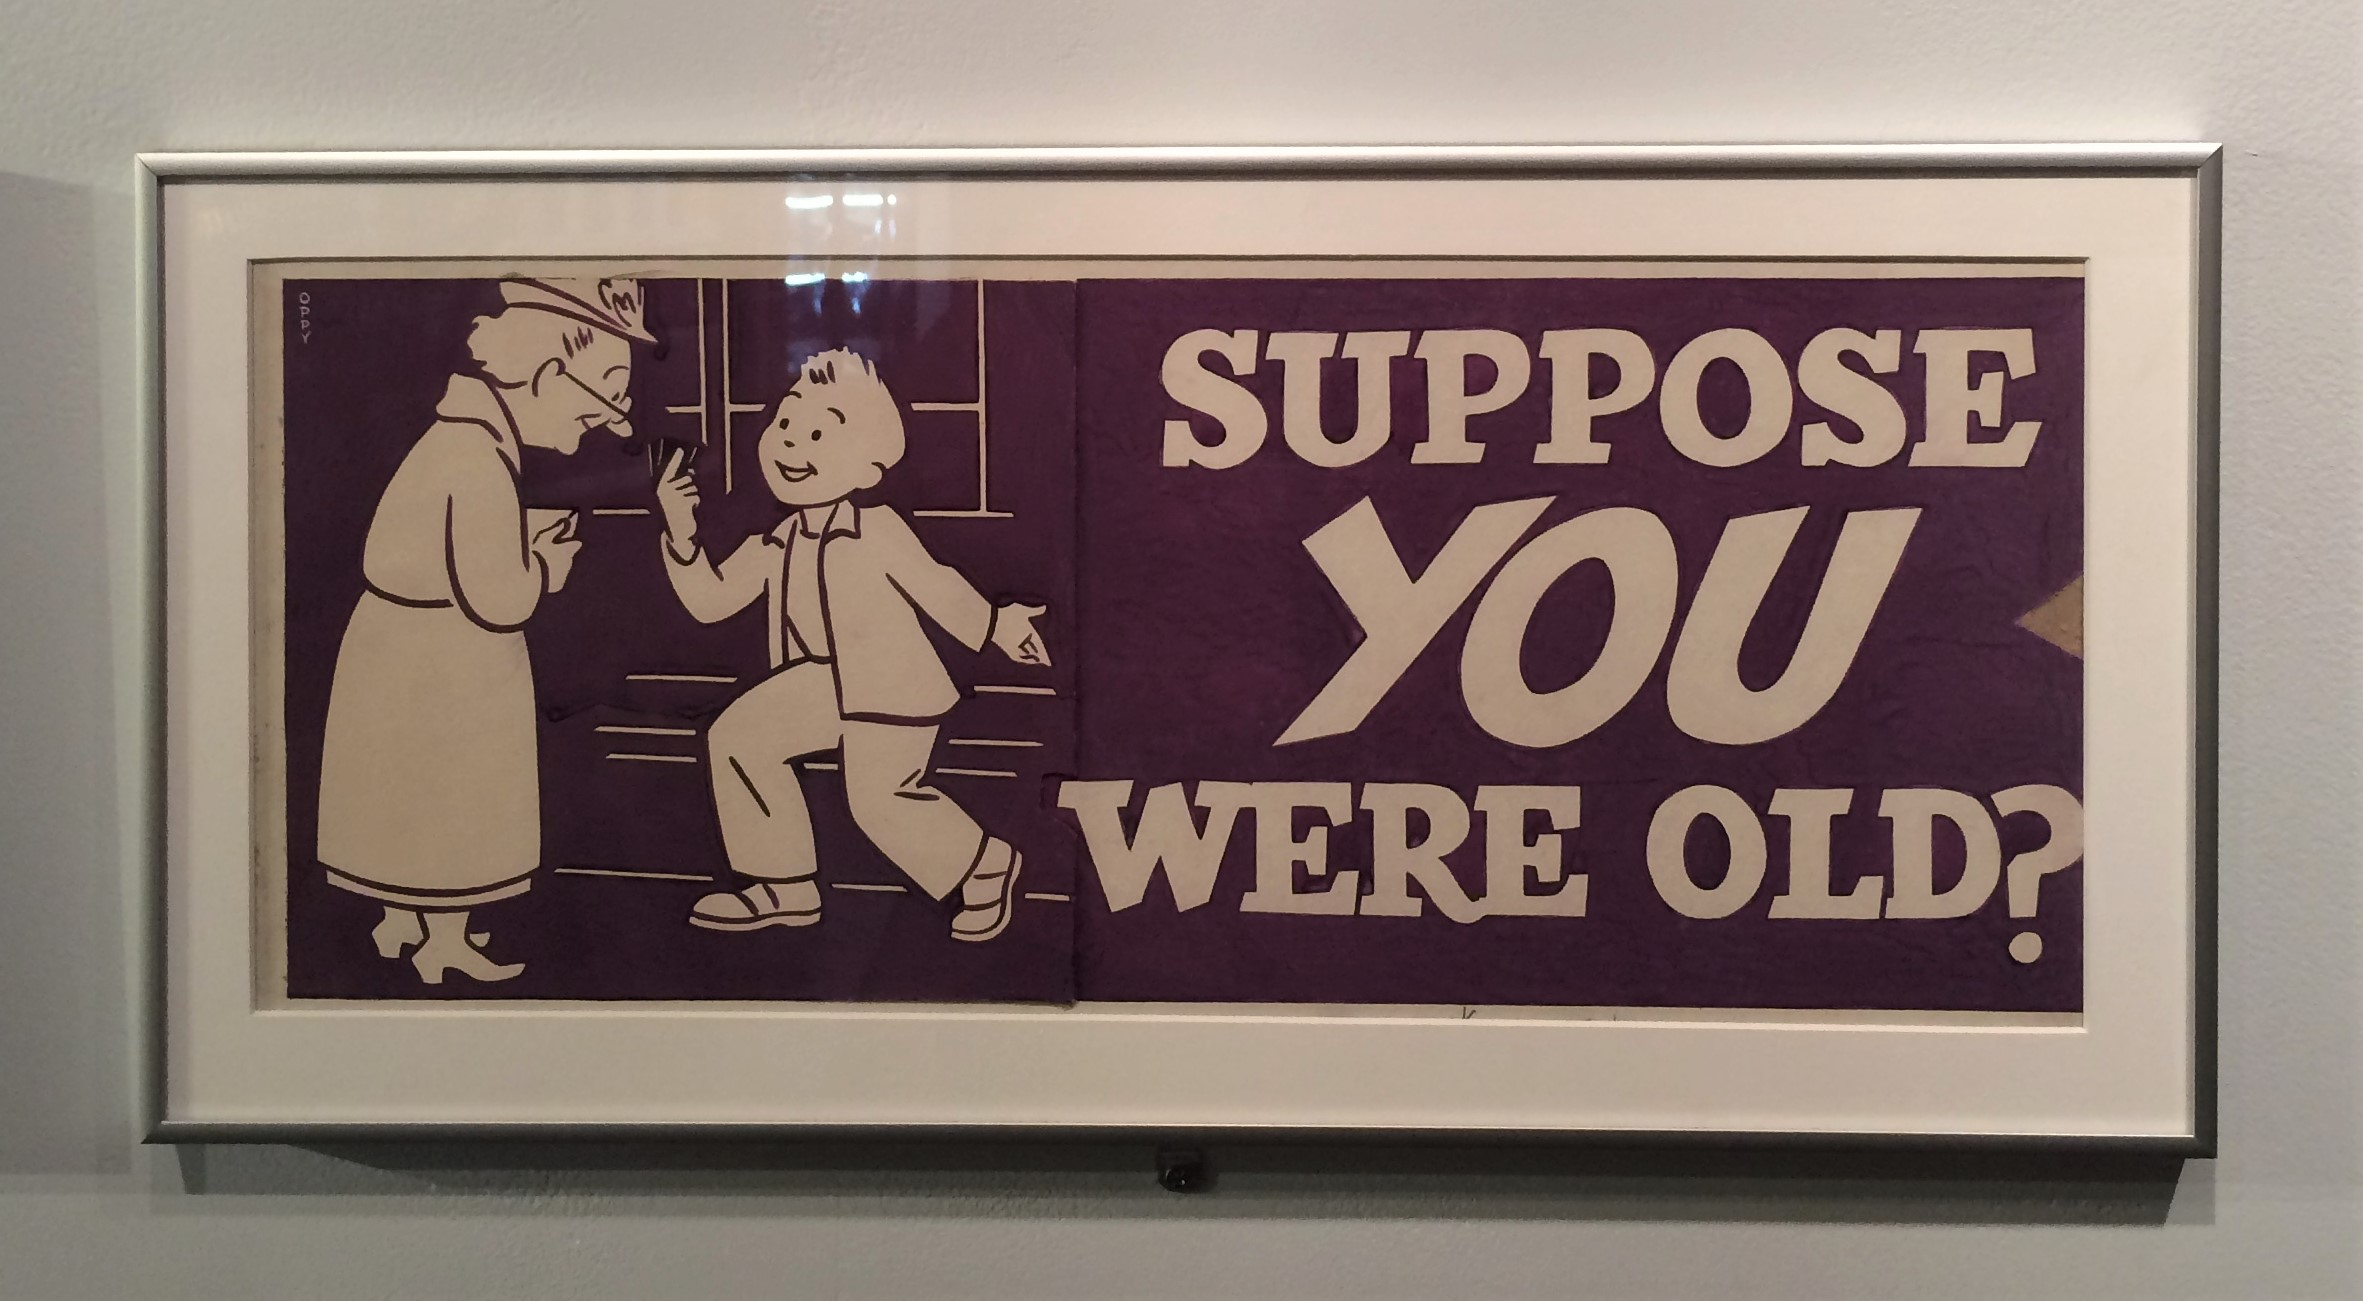 "Old New York City subway poster encouraging people to offer seats to seniors. The poster reads ""Suppose you were old?"""